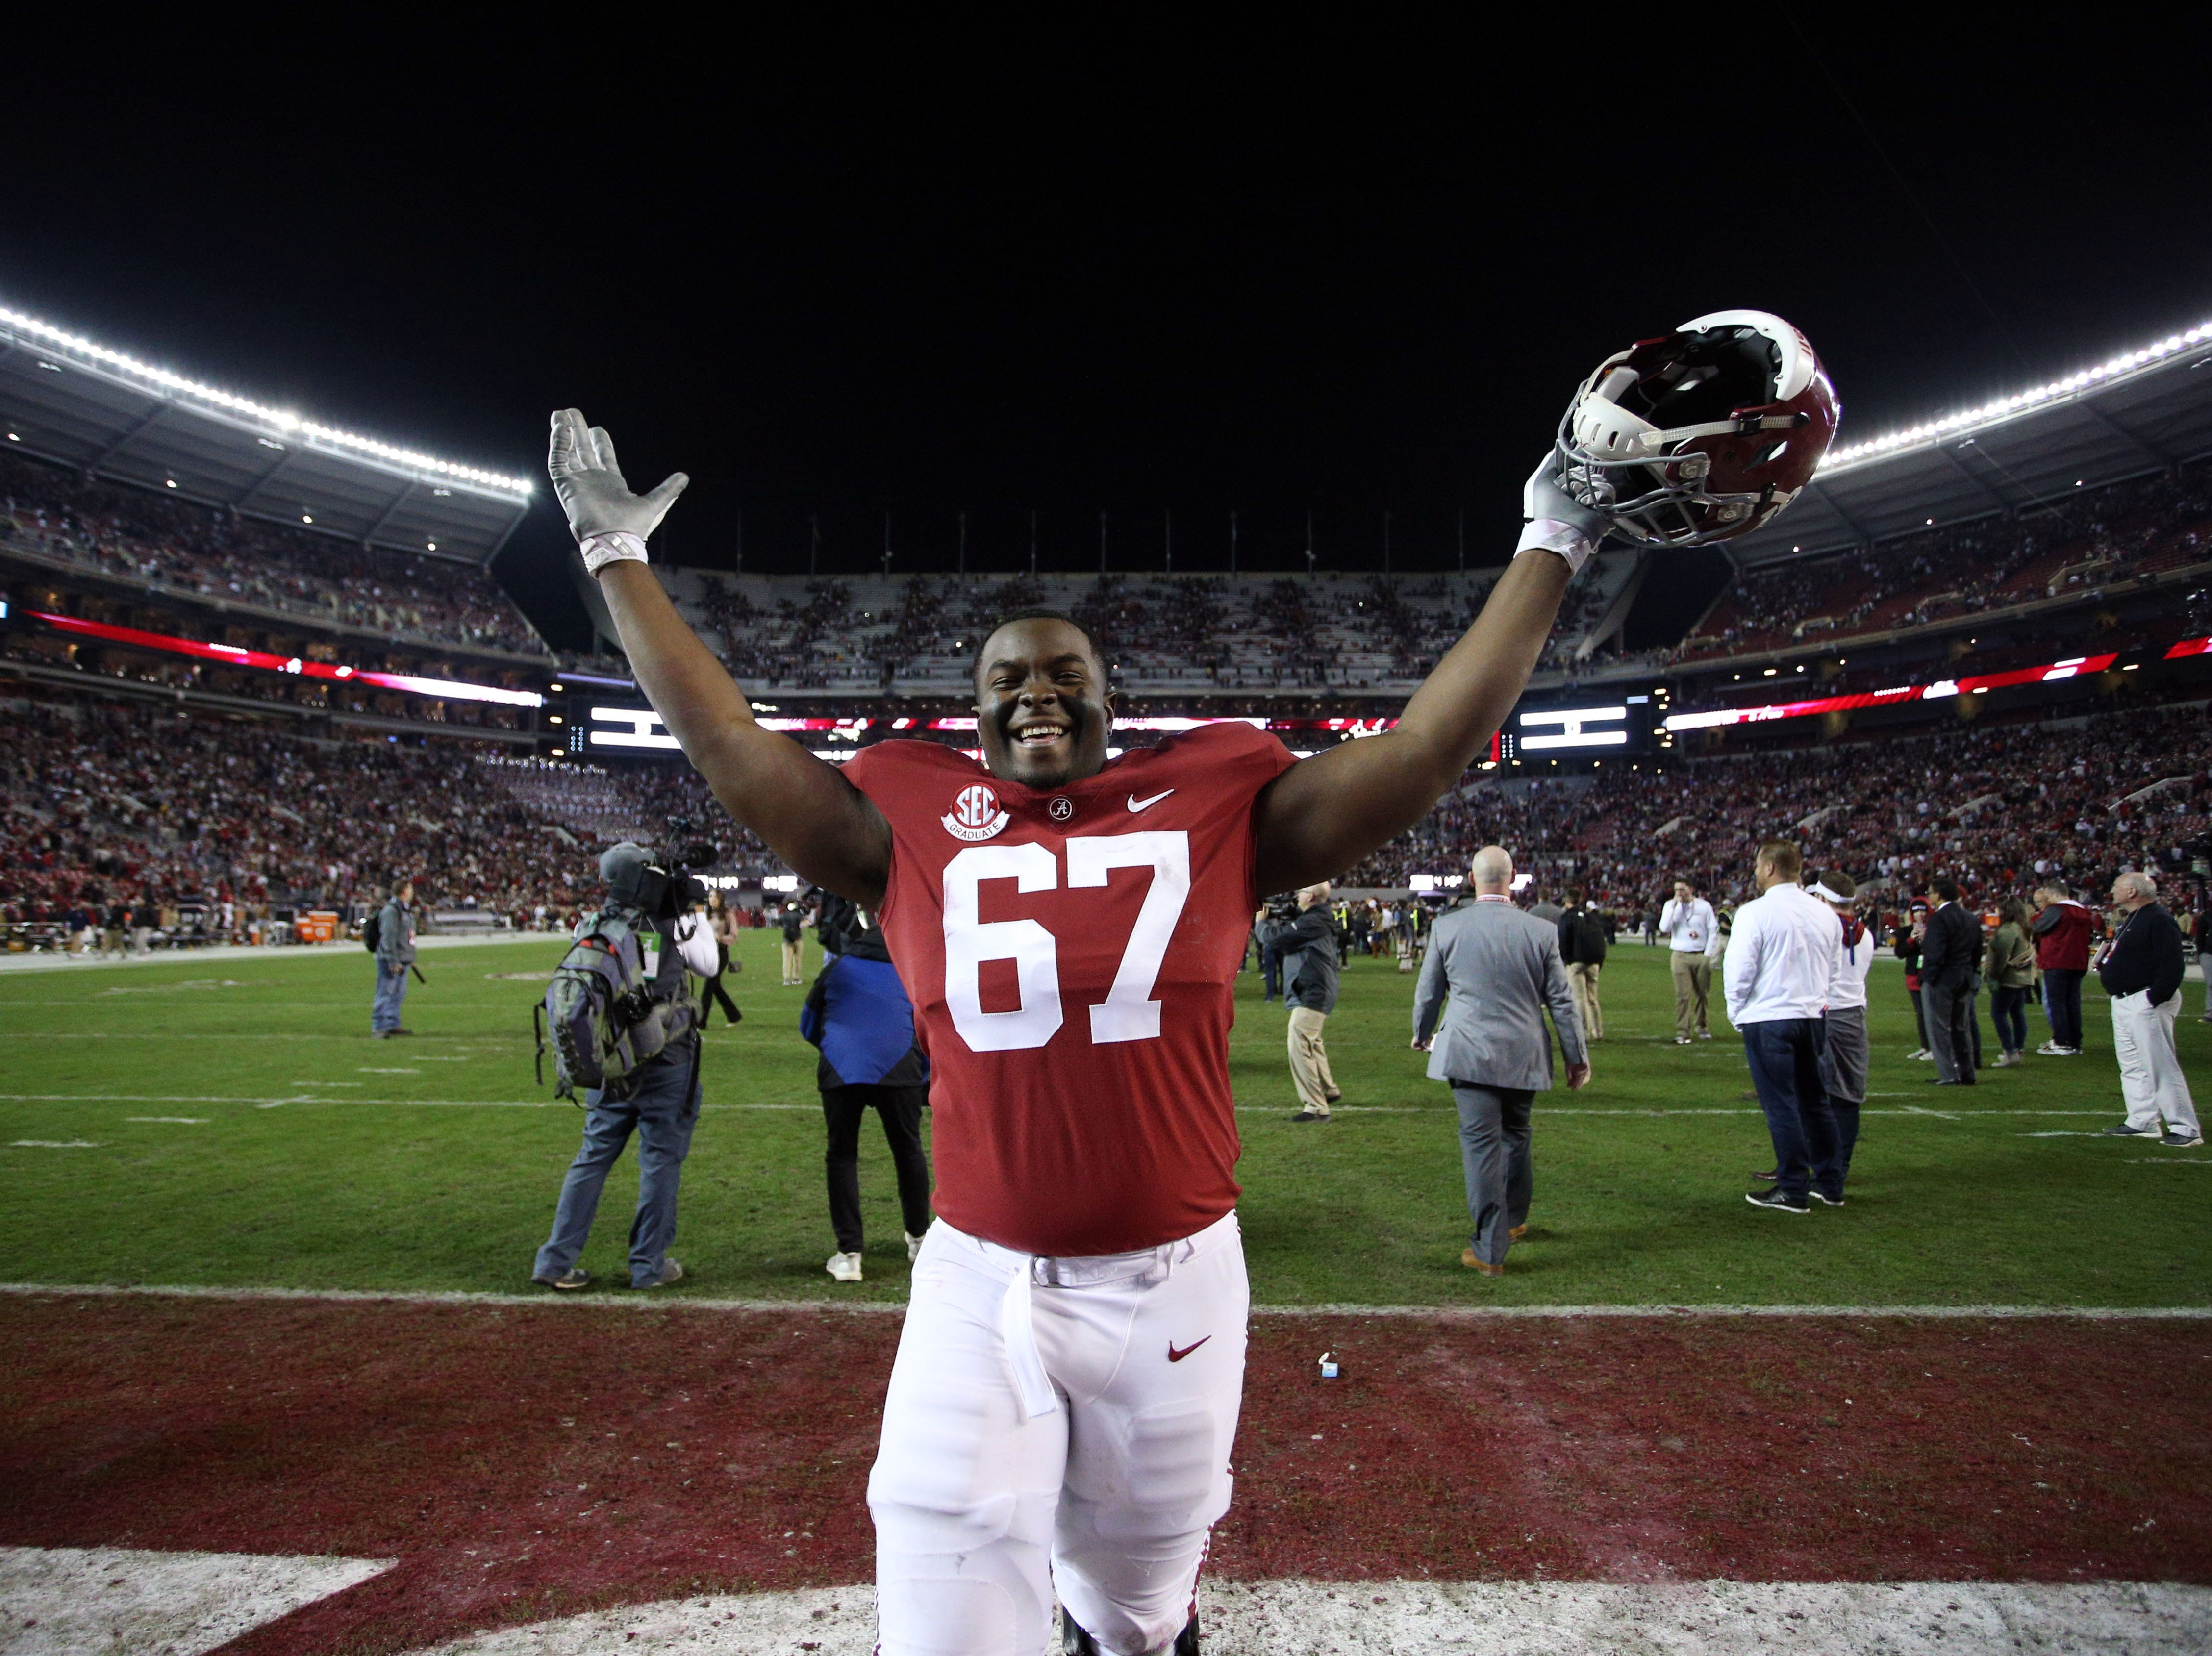 Alabama Crimson Tide offensive lineman Joshua Casher celebrates after defeating the Auburn Tigers at Bryant-Denny Stadium.